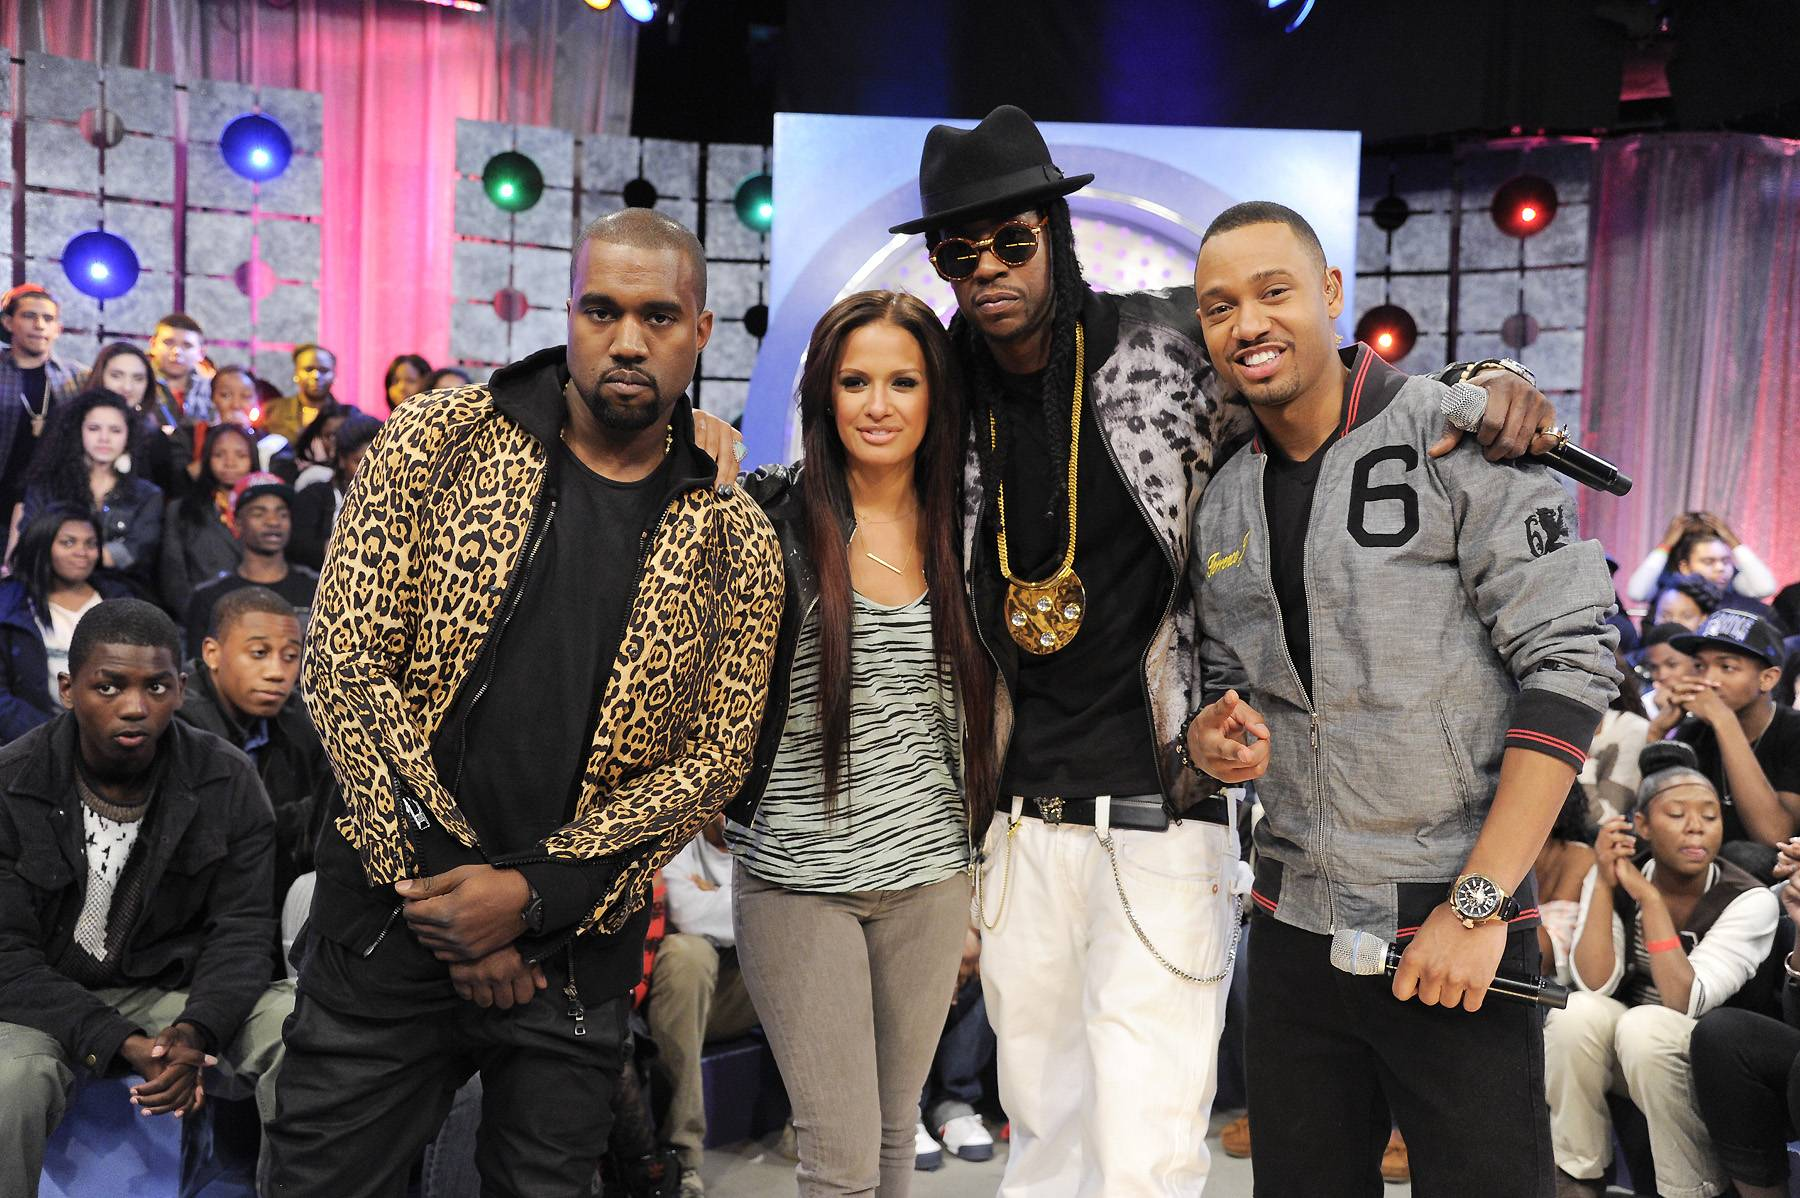 Stay Right There - Kanye West, 2 Chainz, Rocsi Diaz and Terrence J at 106 & Park, April 9, 2012. (photo: John Ricard / BET)